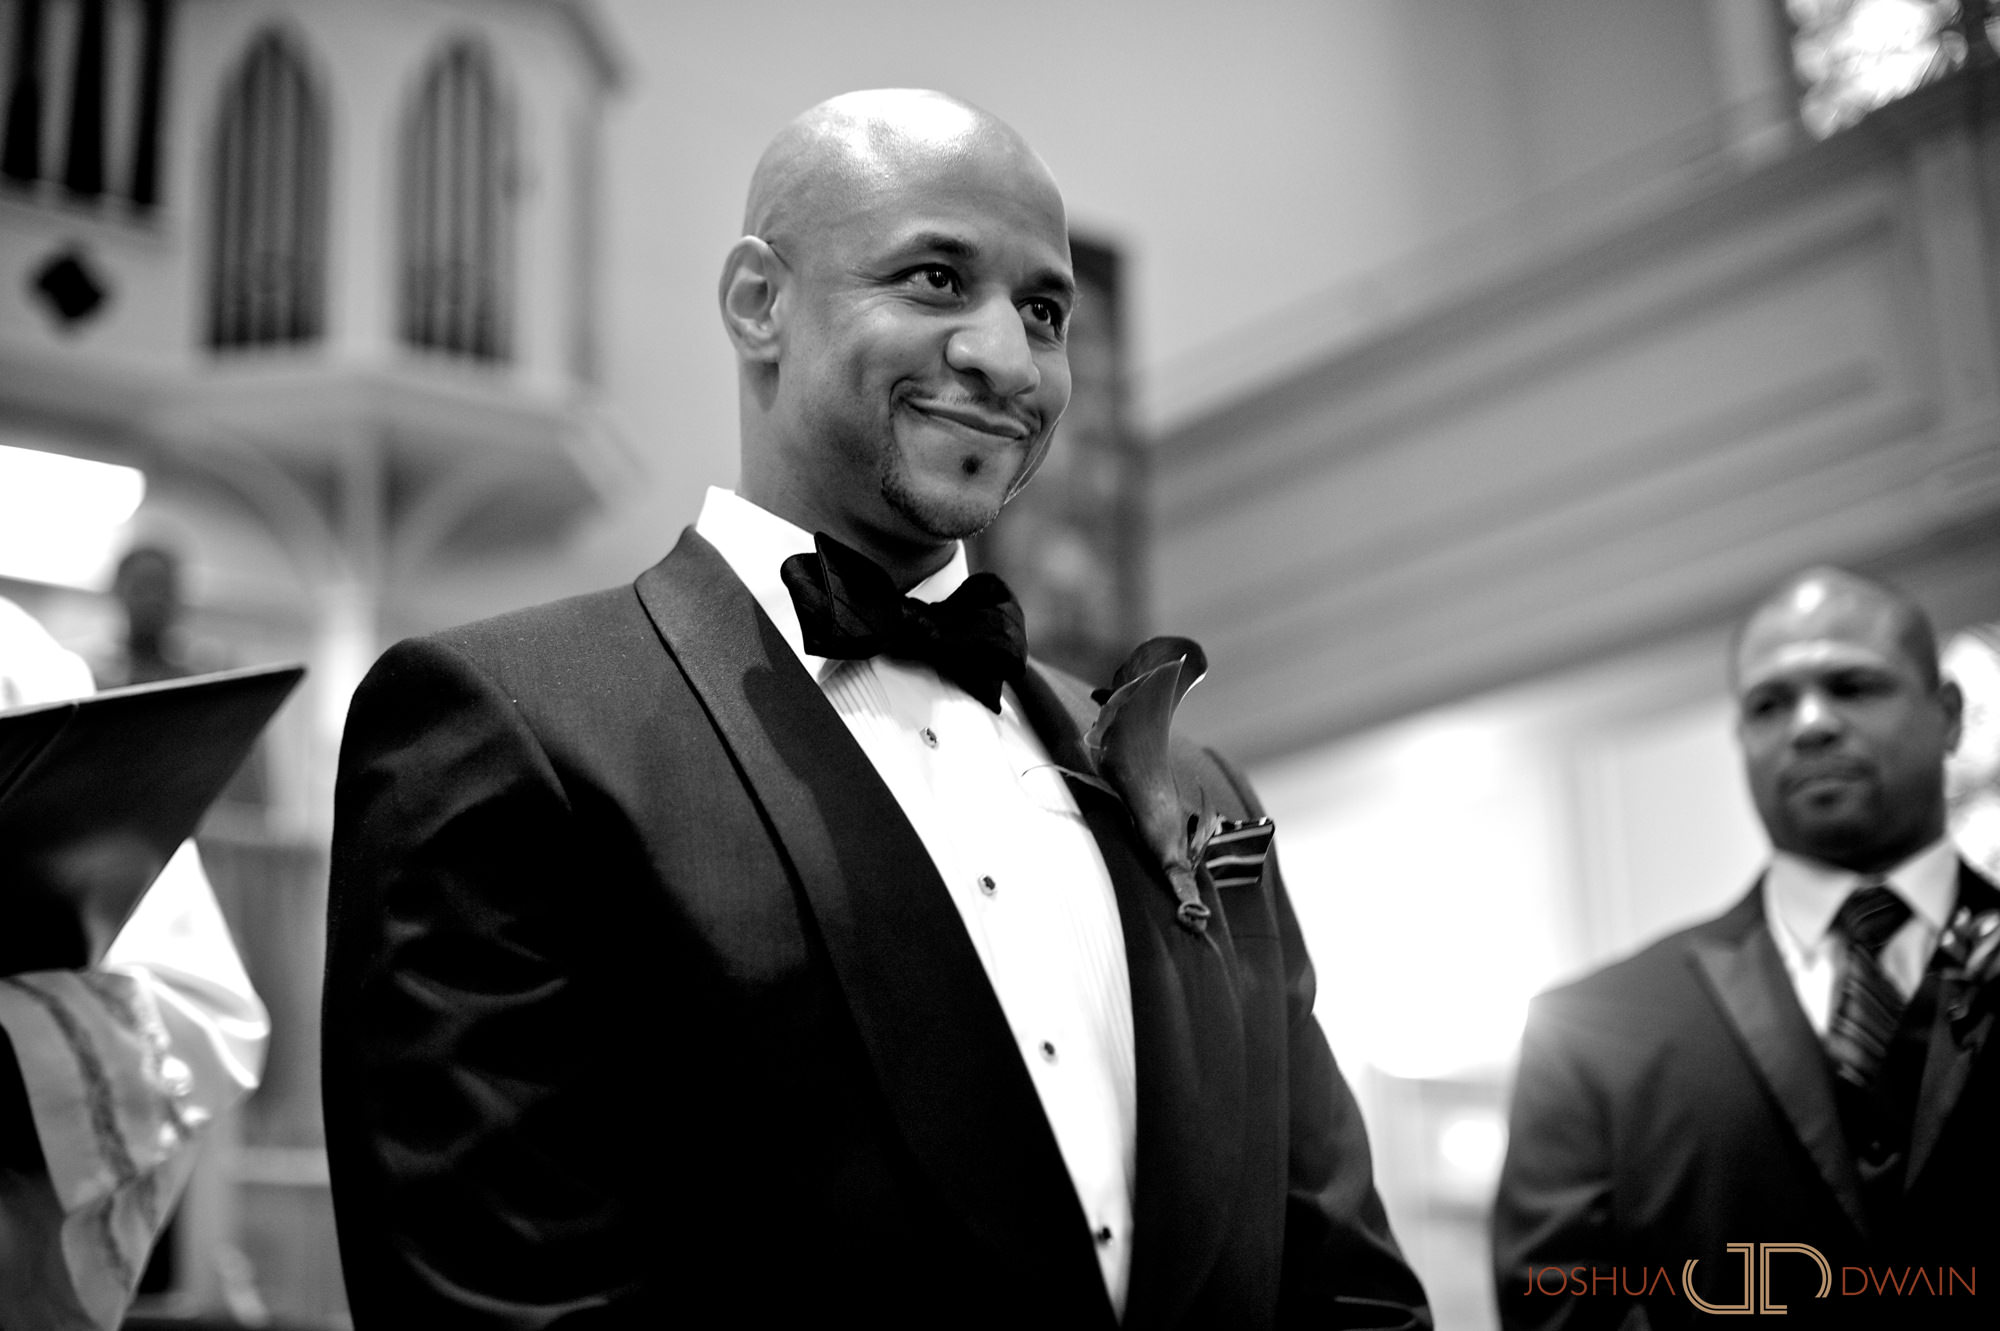 carol-shiloh-011-the-palace-somerset-new-jerseywedding-photographer-joshua-dwain-2011-11-25_cs_399